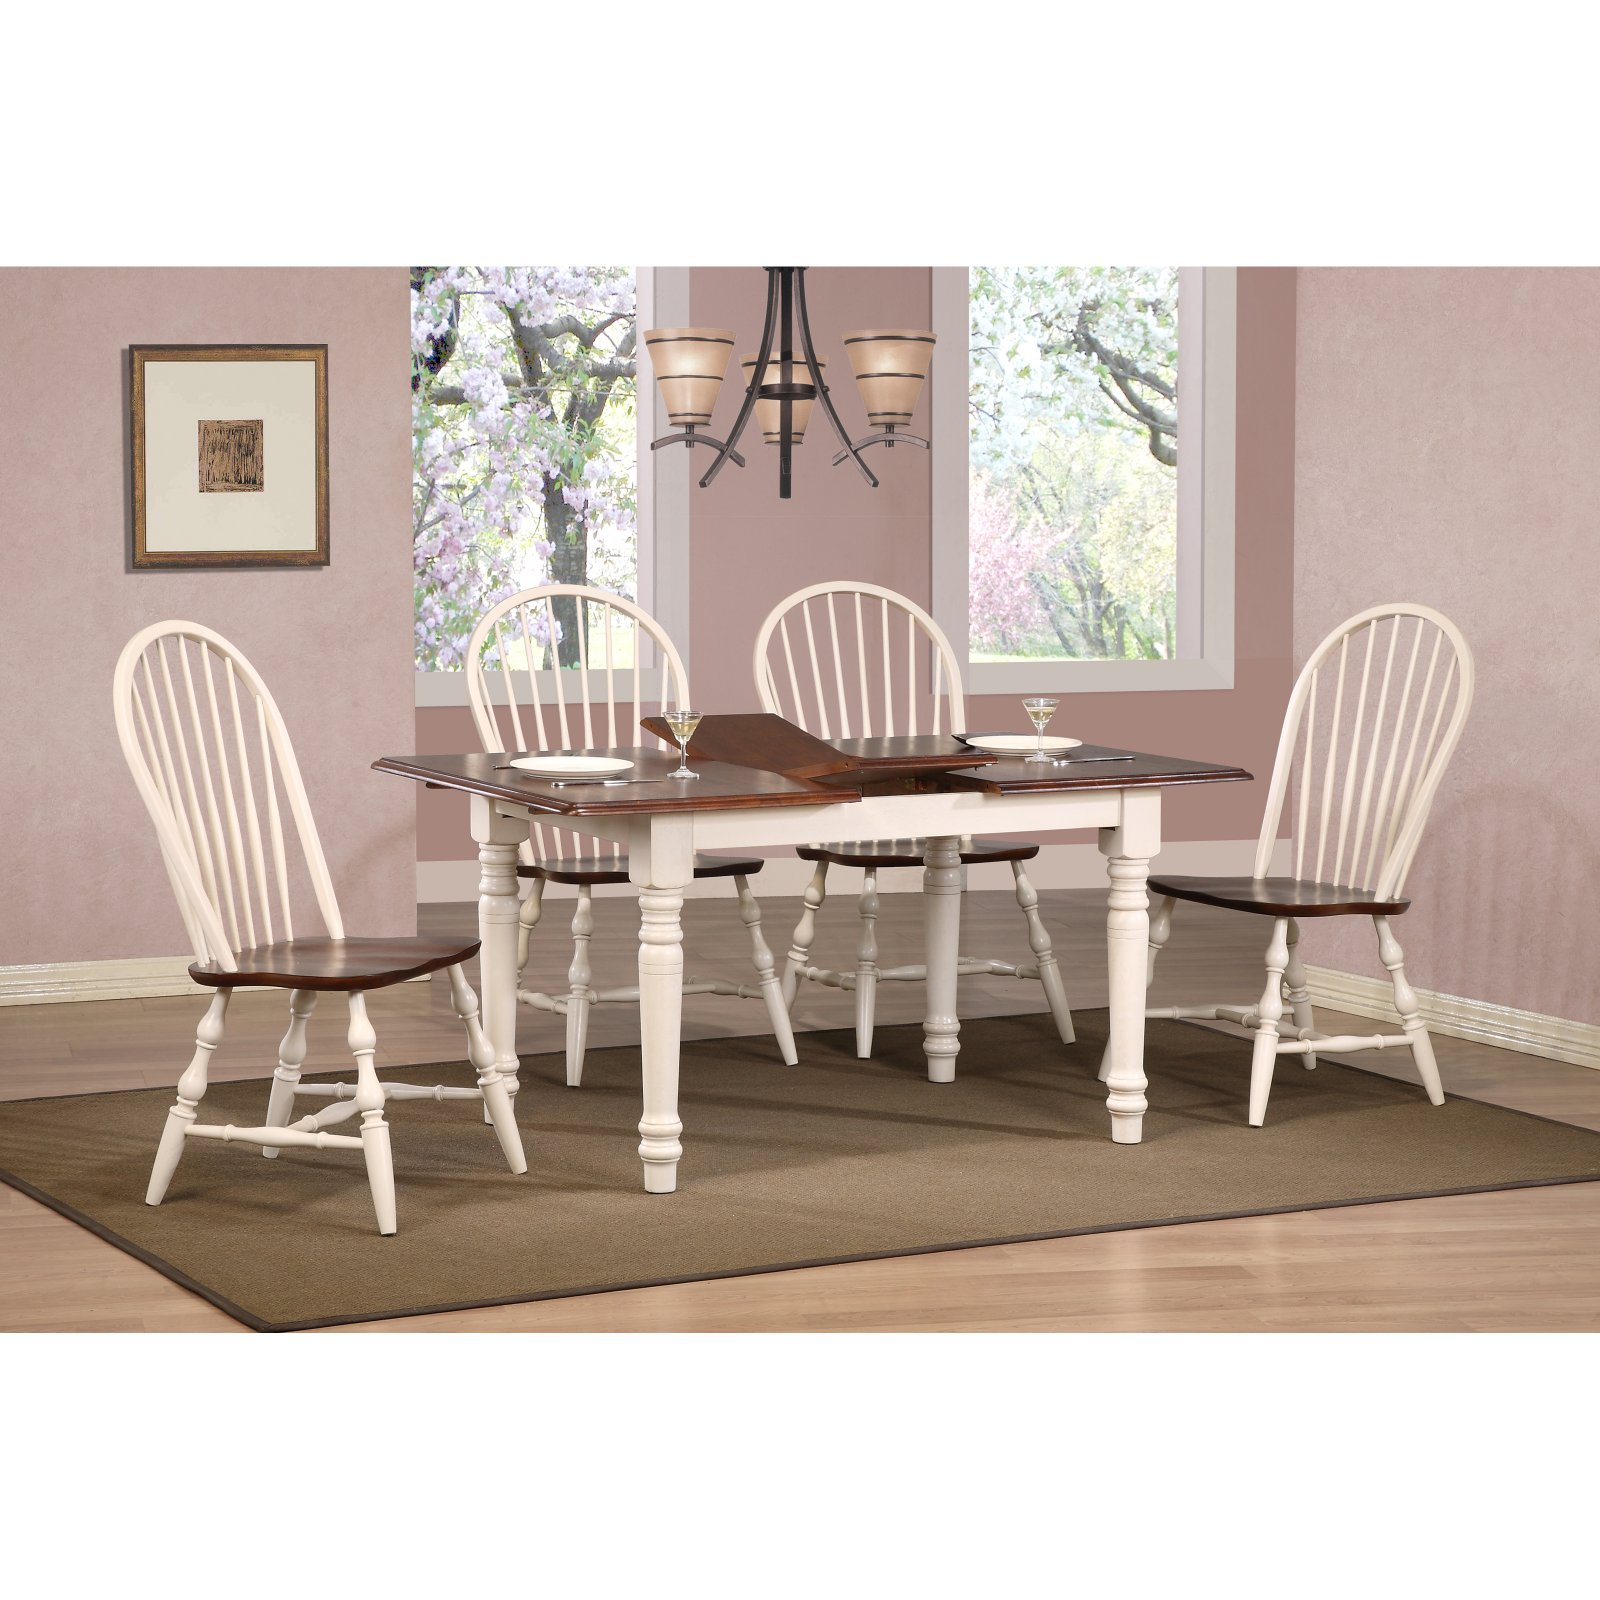 Sunset Trading 5 pc. Butterfly Dining Set with Spindleback Chairs - Antique White